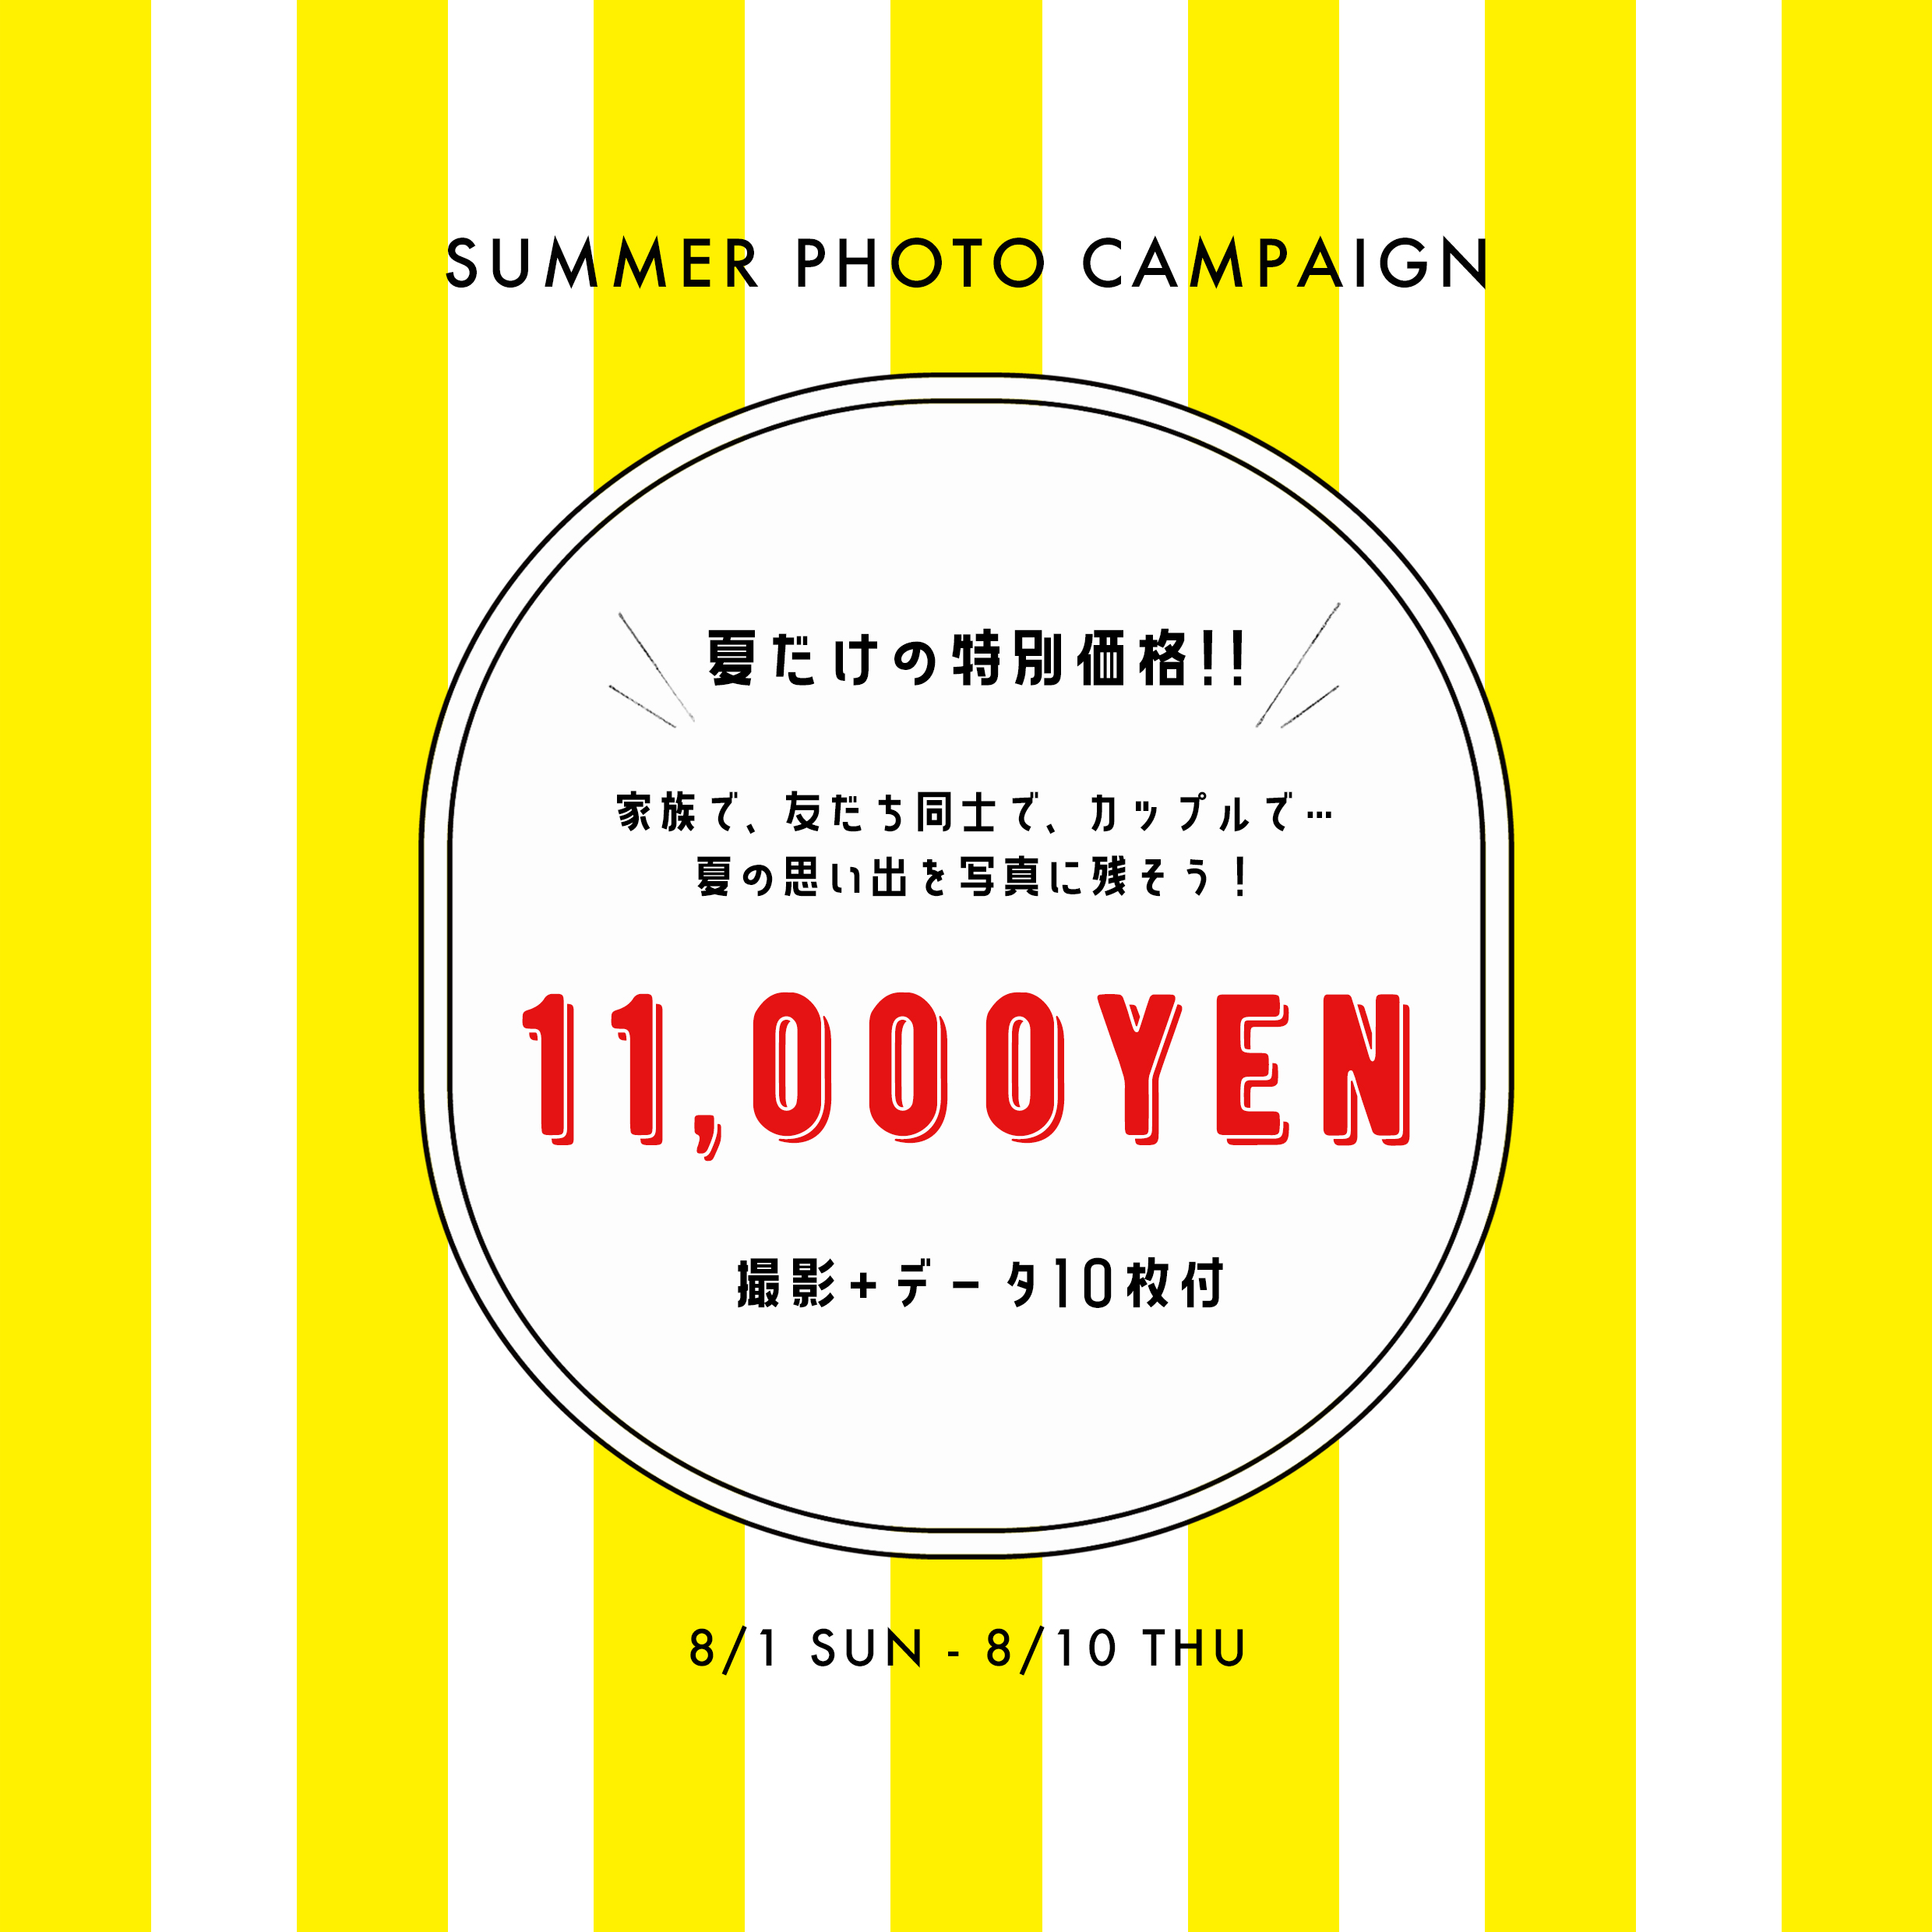 SUMMER PHOTO CAMPAIGN